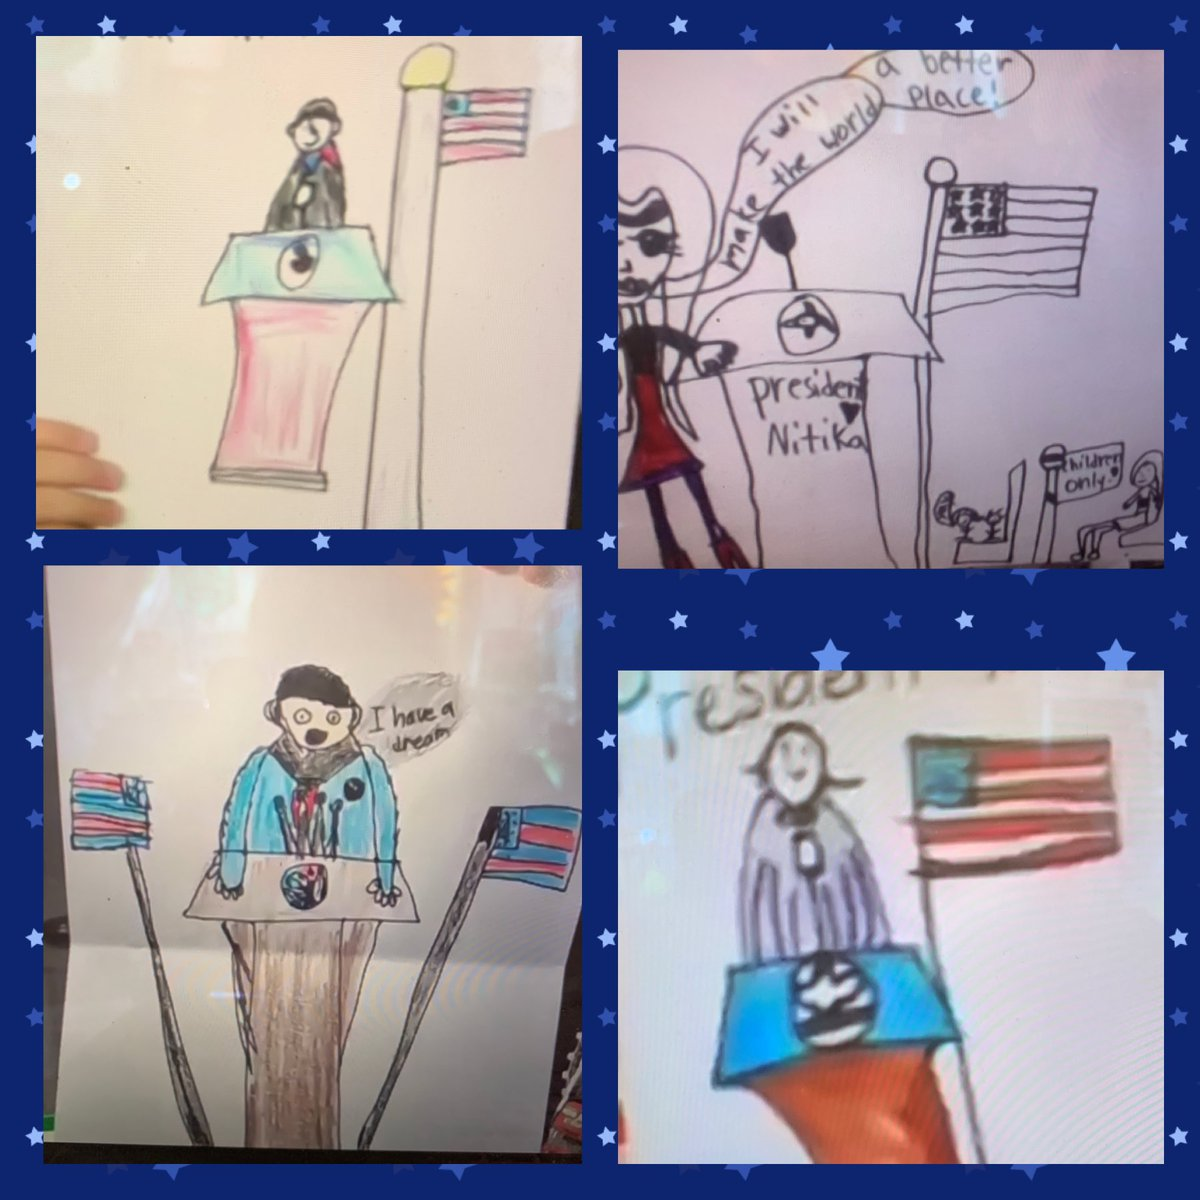 Asked my 2nd graders to see themselves as presidents one day. Their ideas and perspective are so incredible. They make me so hopeful for the future. @DrBiden @KamalaHarris @TheAmandaGorman @JoeBiden #InaugurationDay #kidheroes